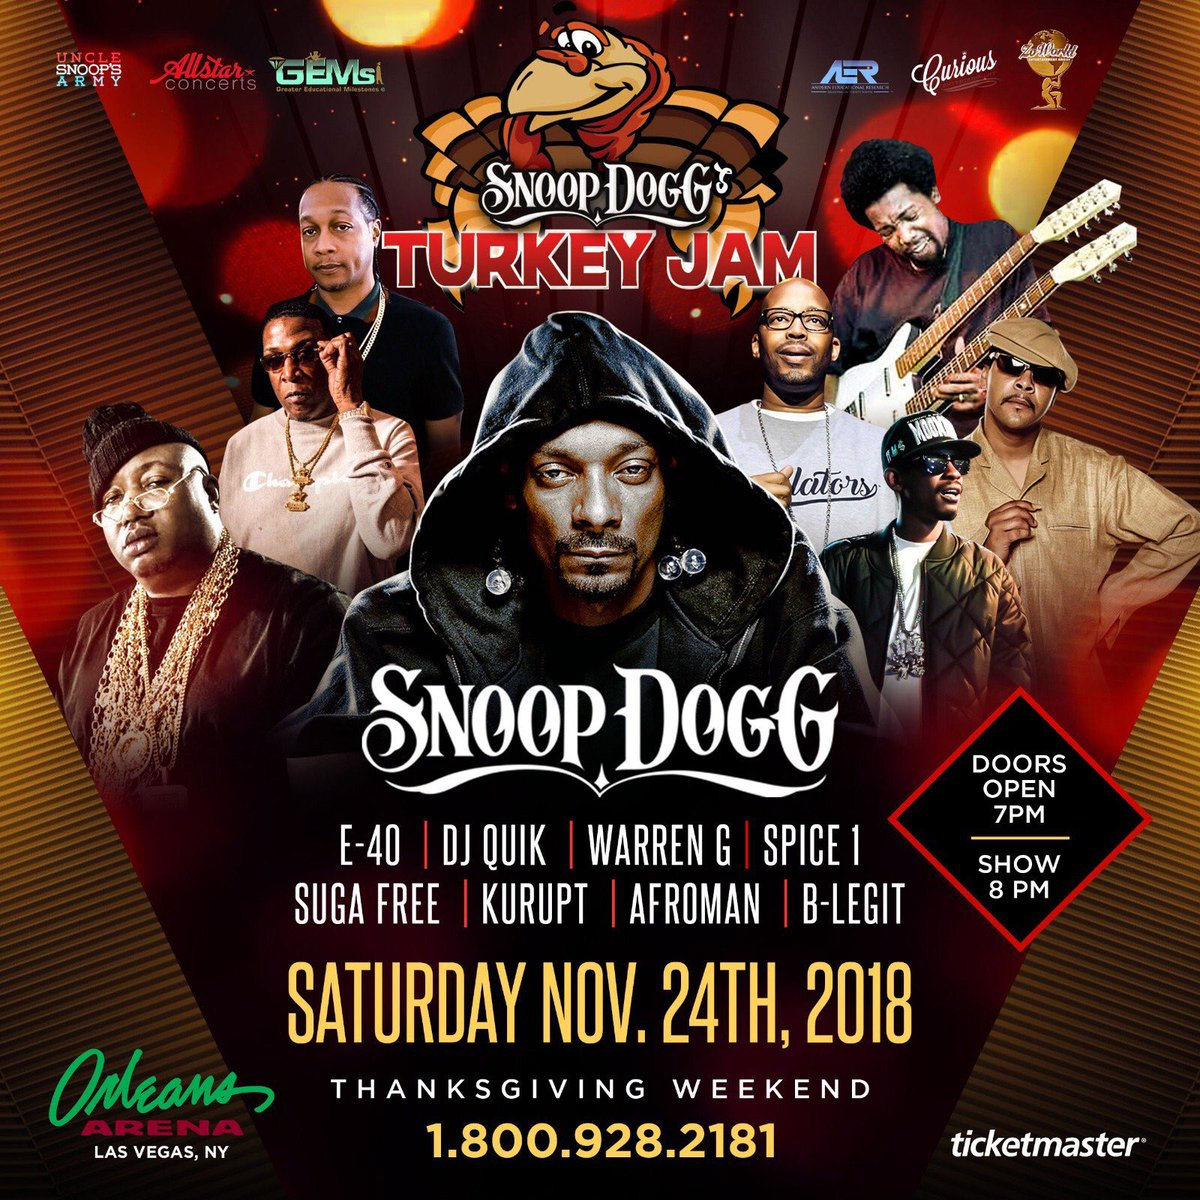 Las Vegas come kick it wit me n the homies this Sat at @orleansarena for the Snoop Dogg Turkey Jam! https://t.co/bNs2HBiIXe